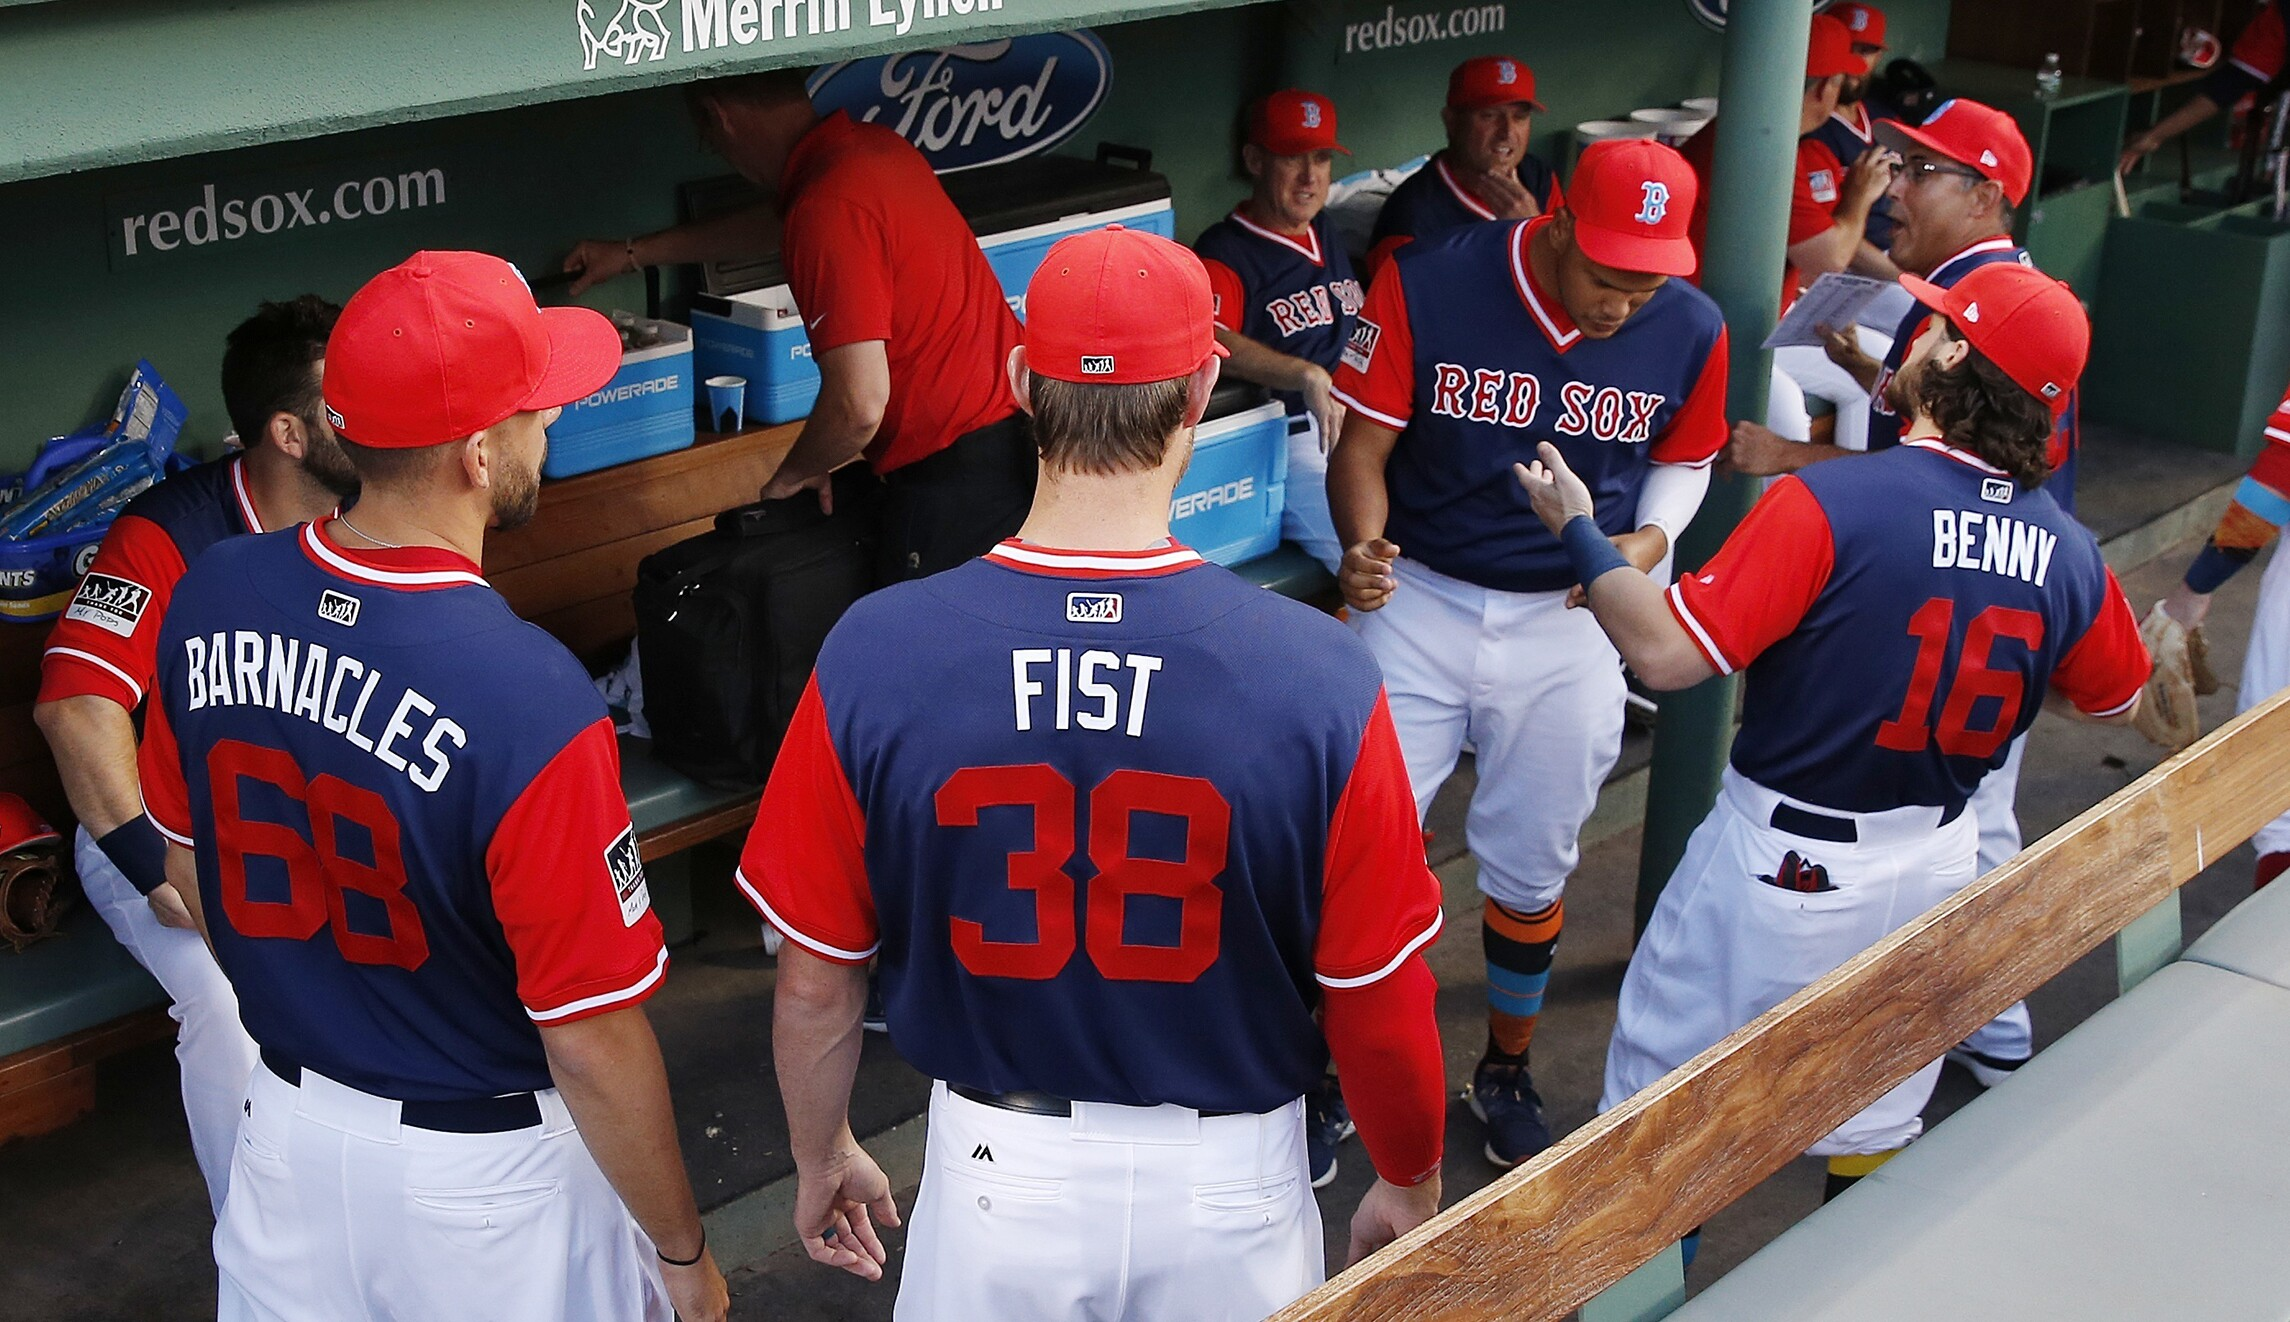 a48d8d67d Boston Red Sox players wear uniforms with their nicknames on the back to  celebrate Players Weekend